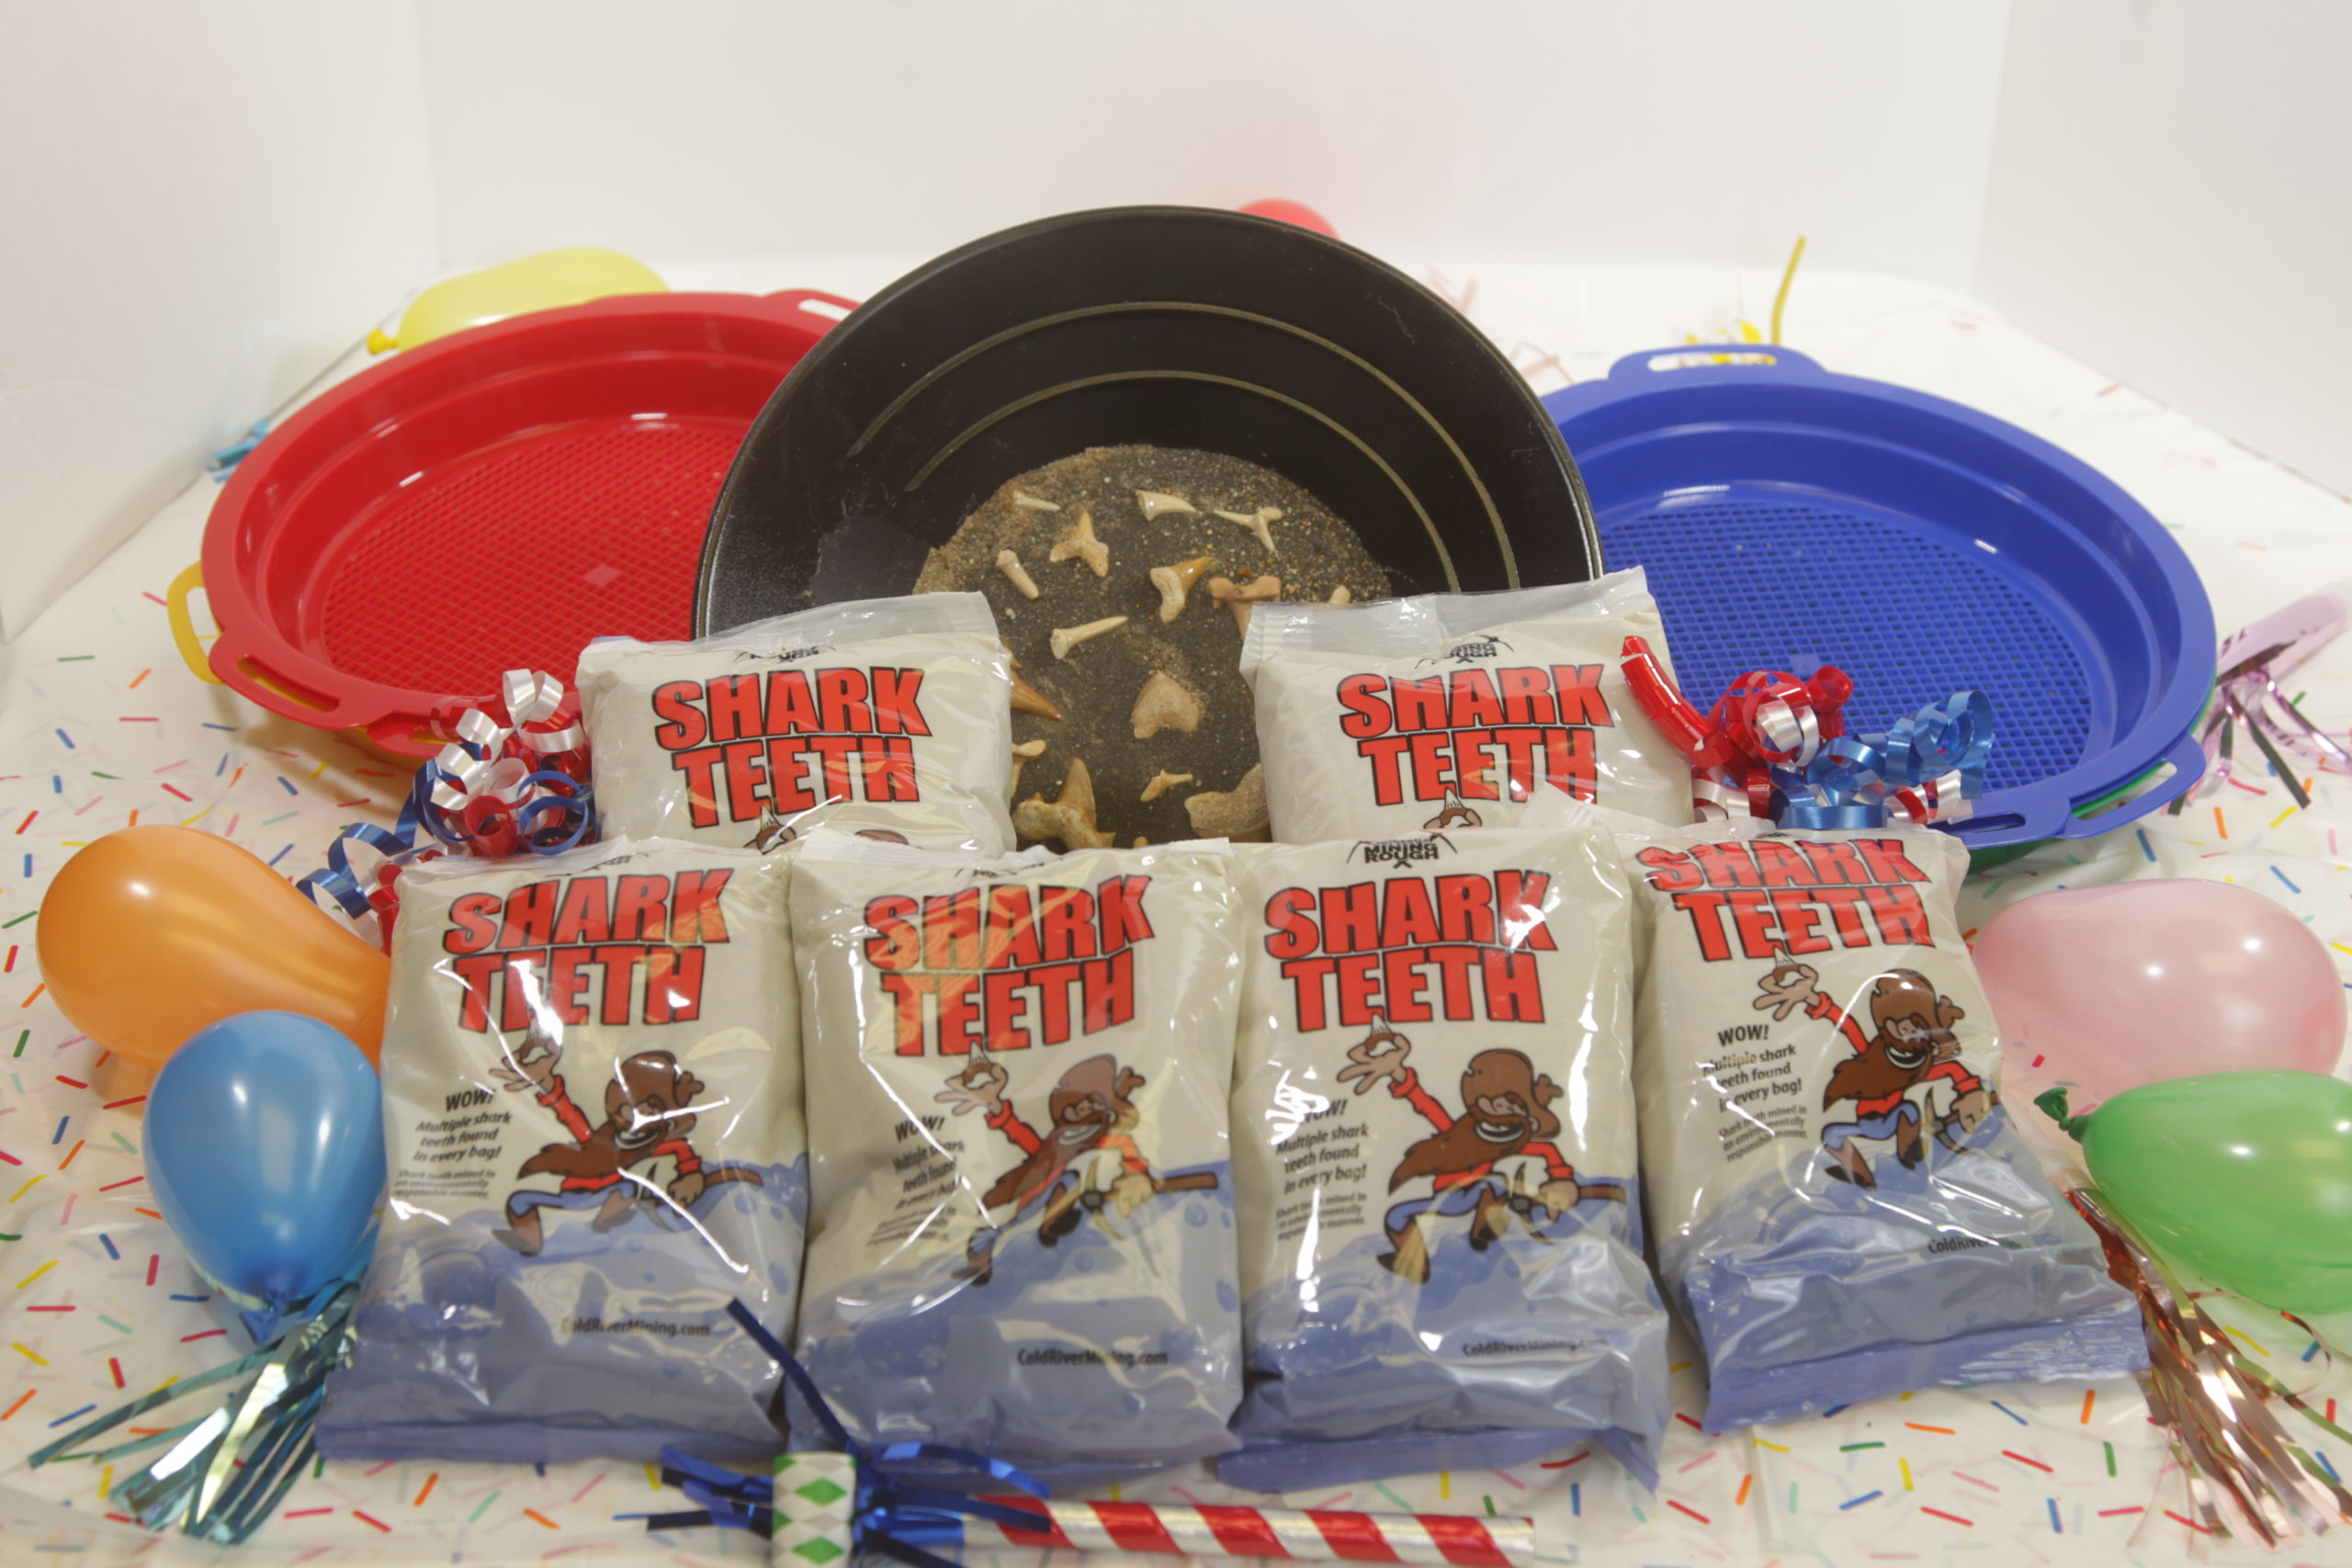 Shark tooth Party Pack with six bags and two sifters